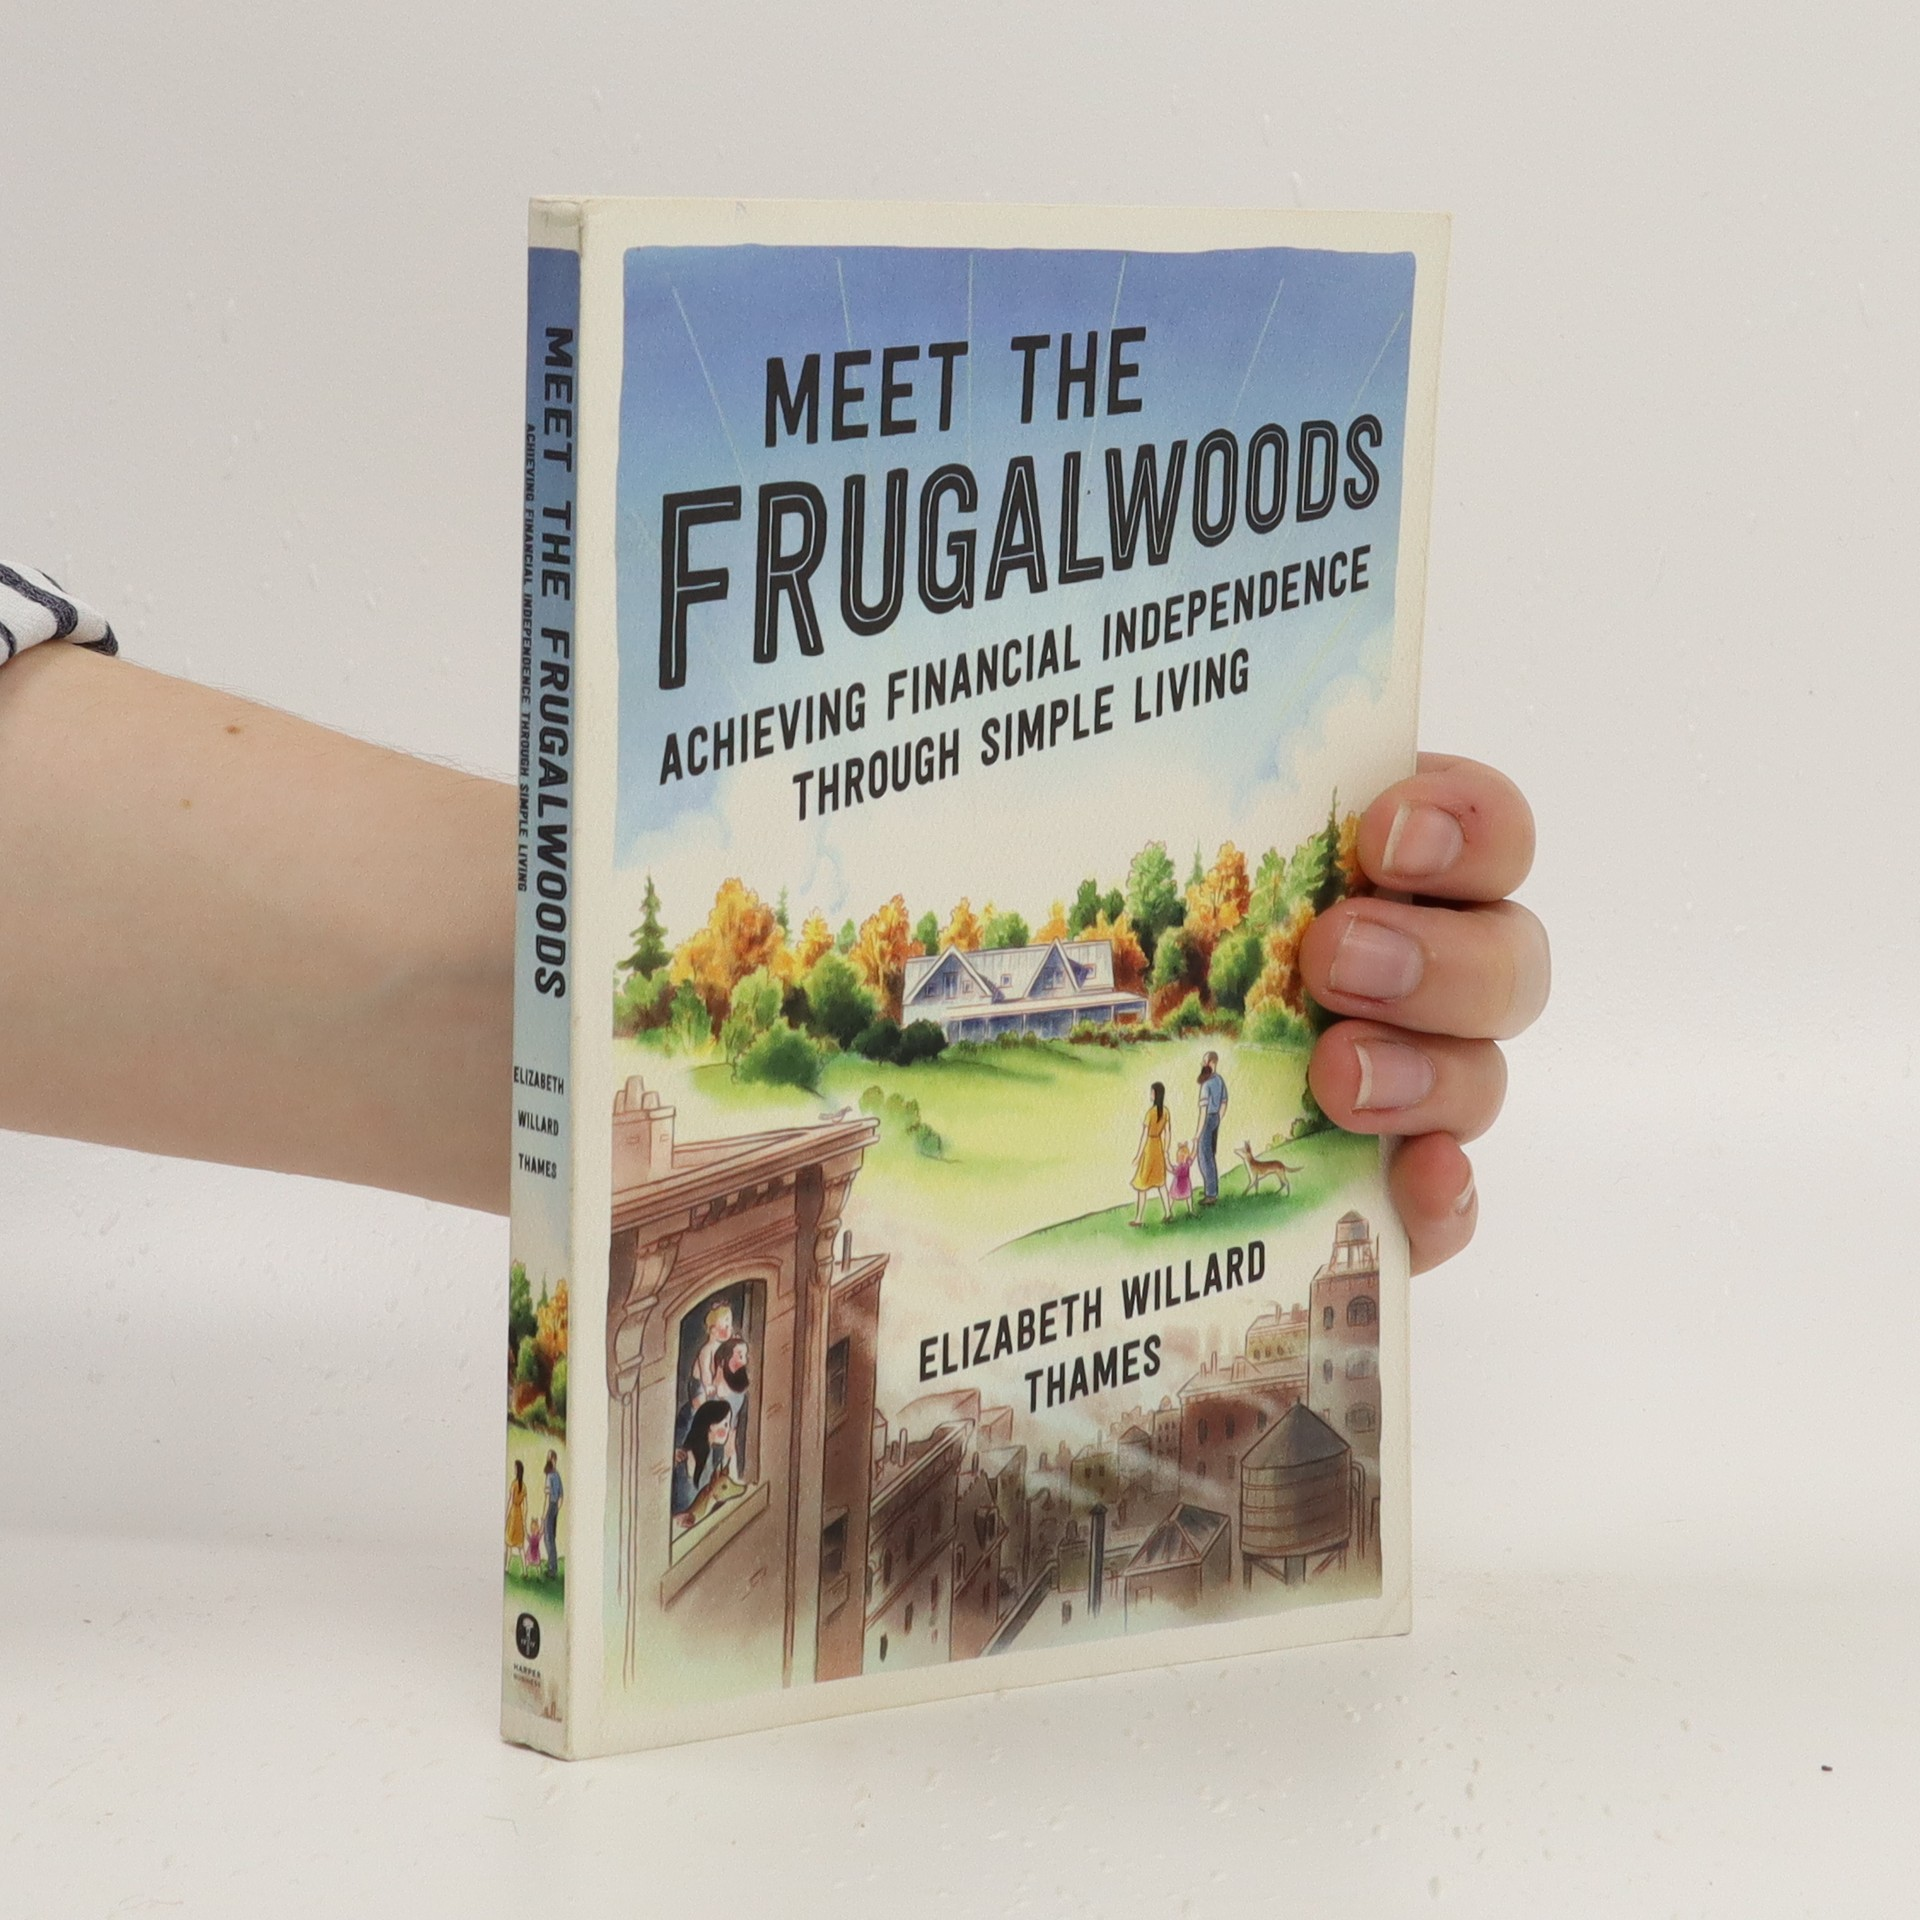 antikvární kniha Meet the Frugalwoods: Achieving Financial Independence Through Simple Living, 2019